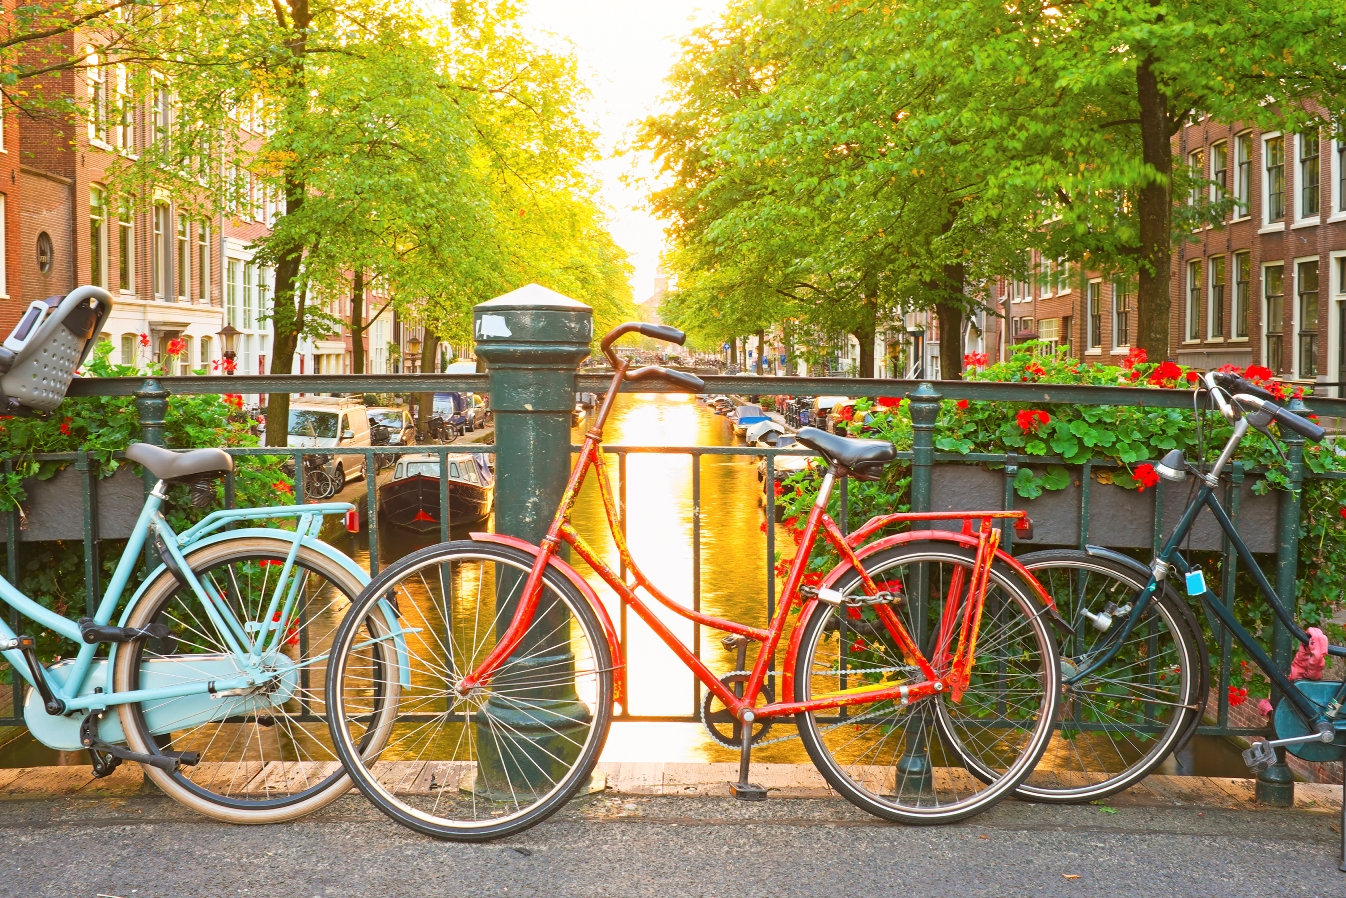 netherlands_amsterdam_bikes_on_the_bridge_istock_000035927814large.jpg